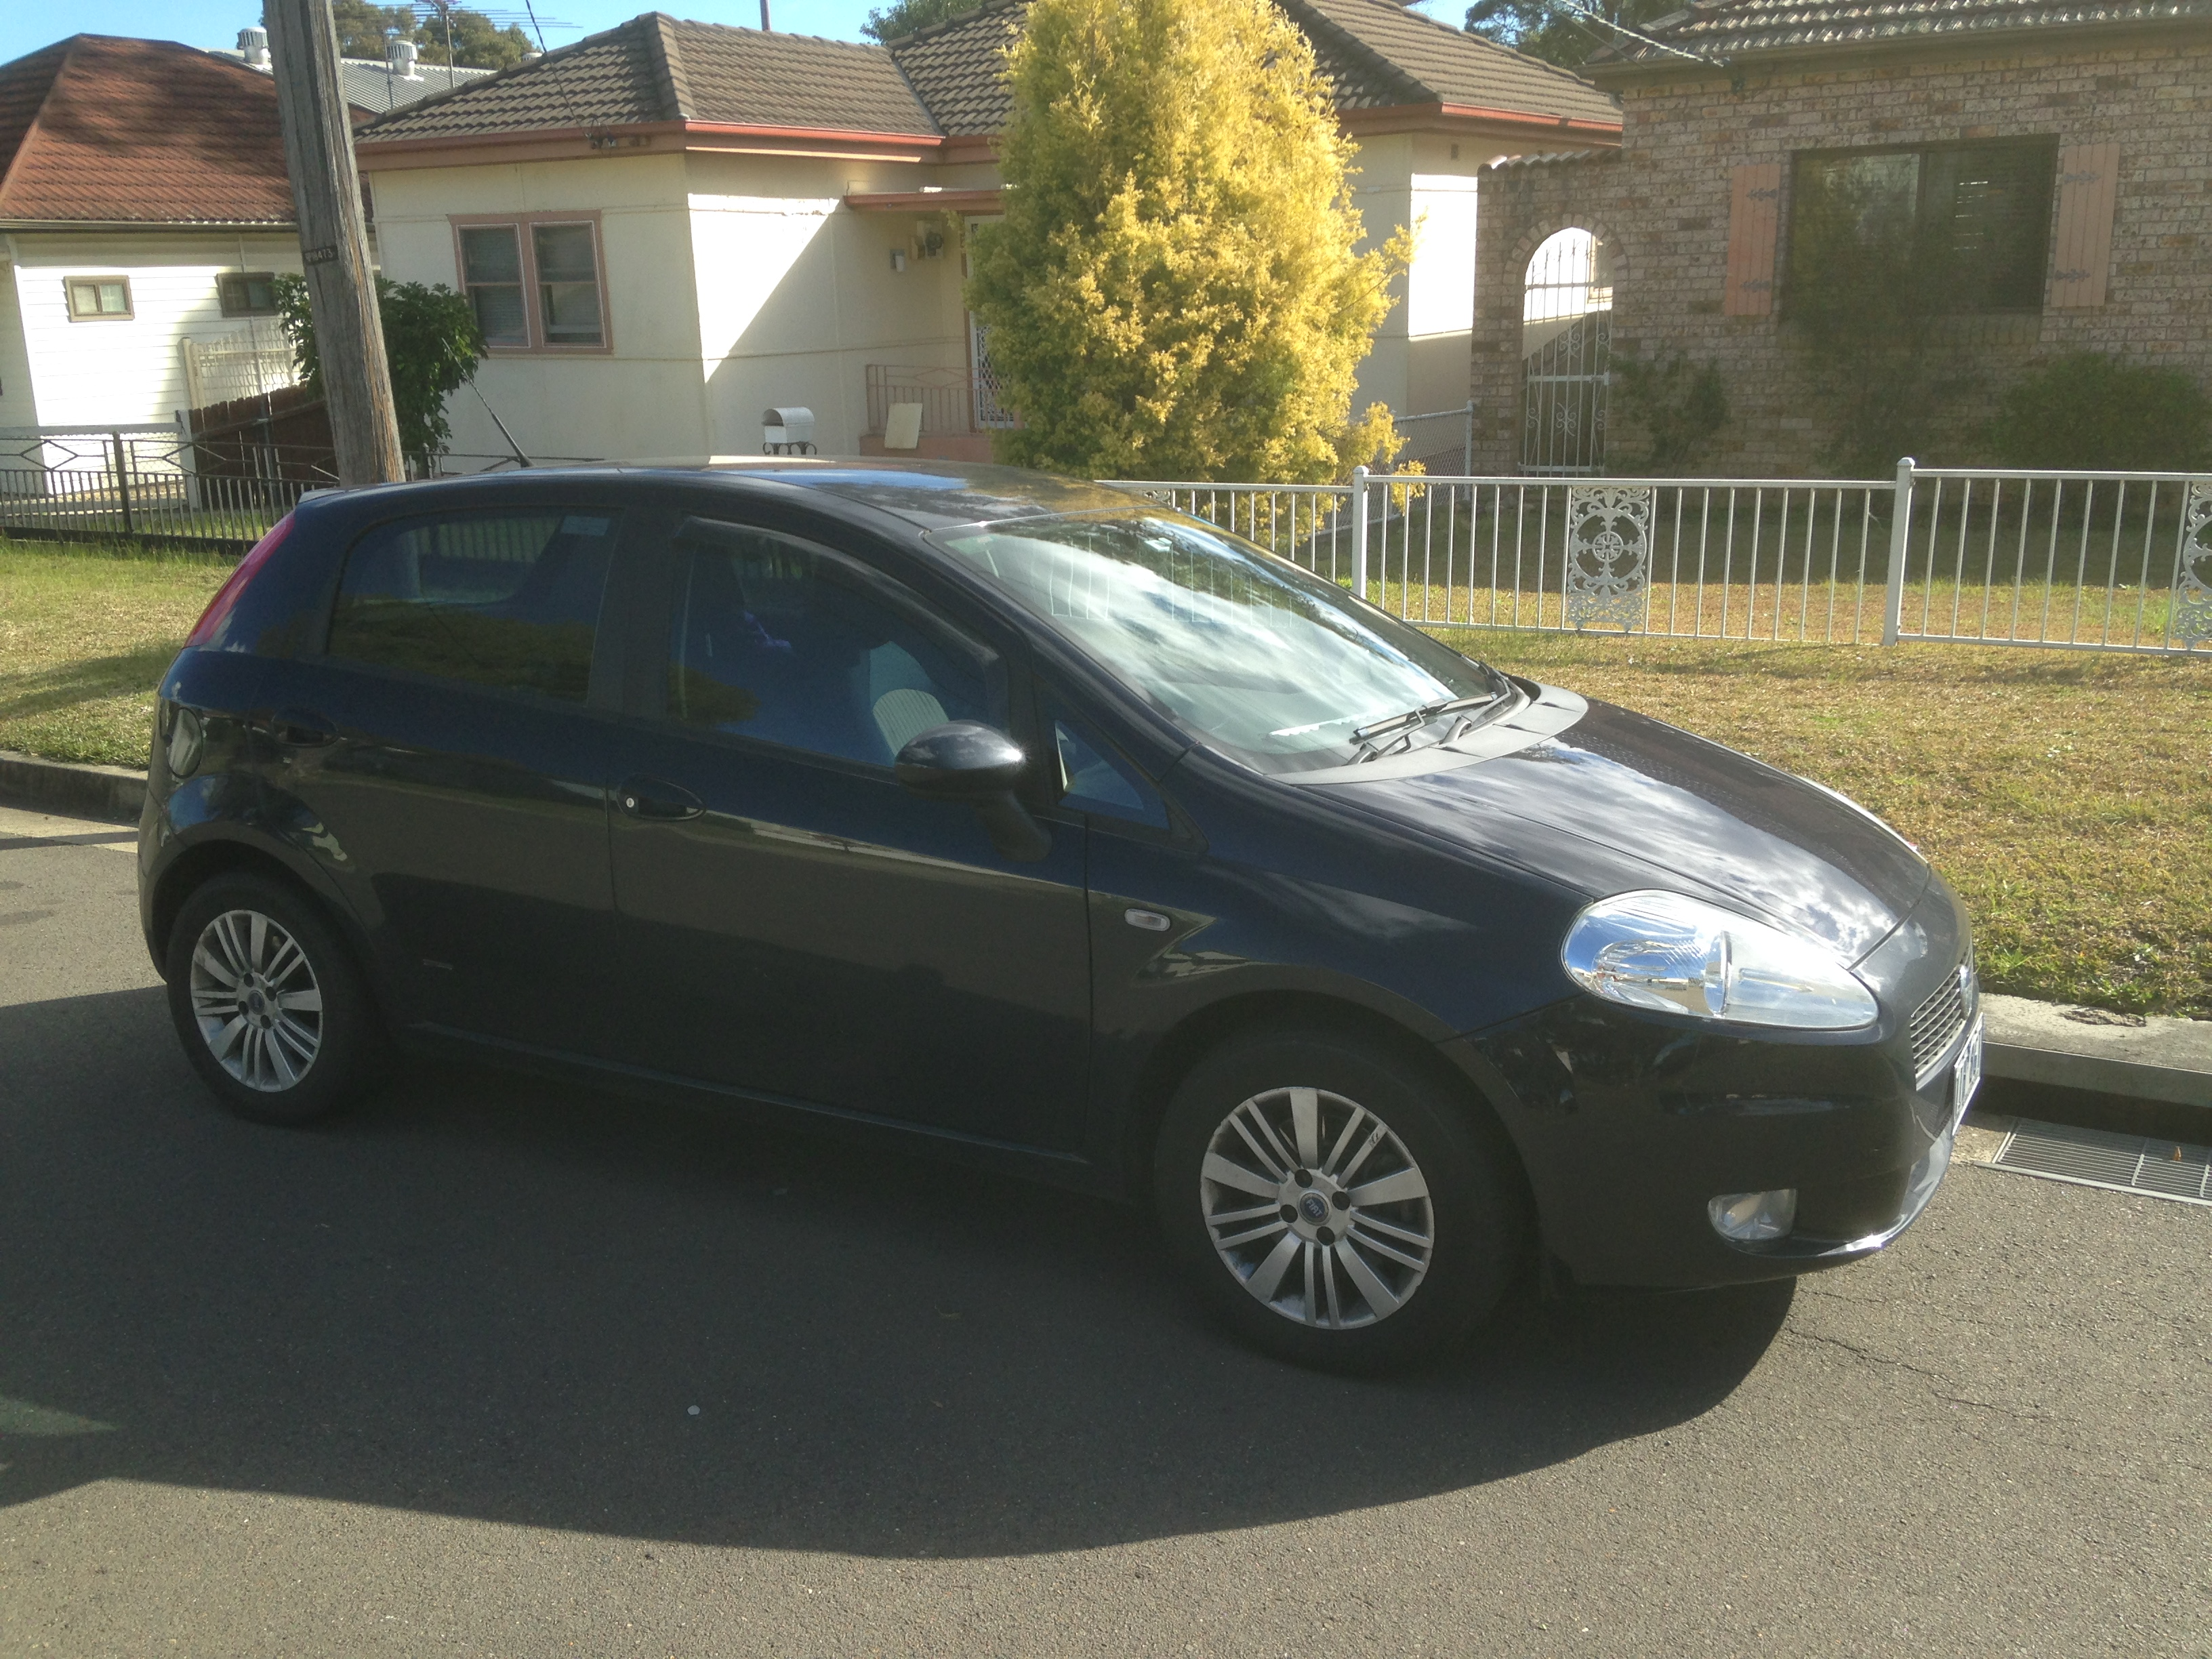 Picture of Jason's 2007 Fiat Punto